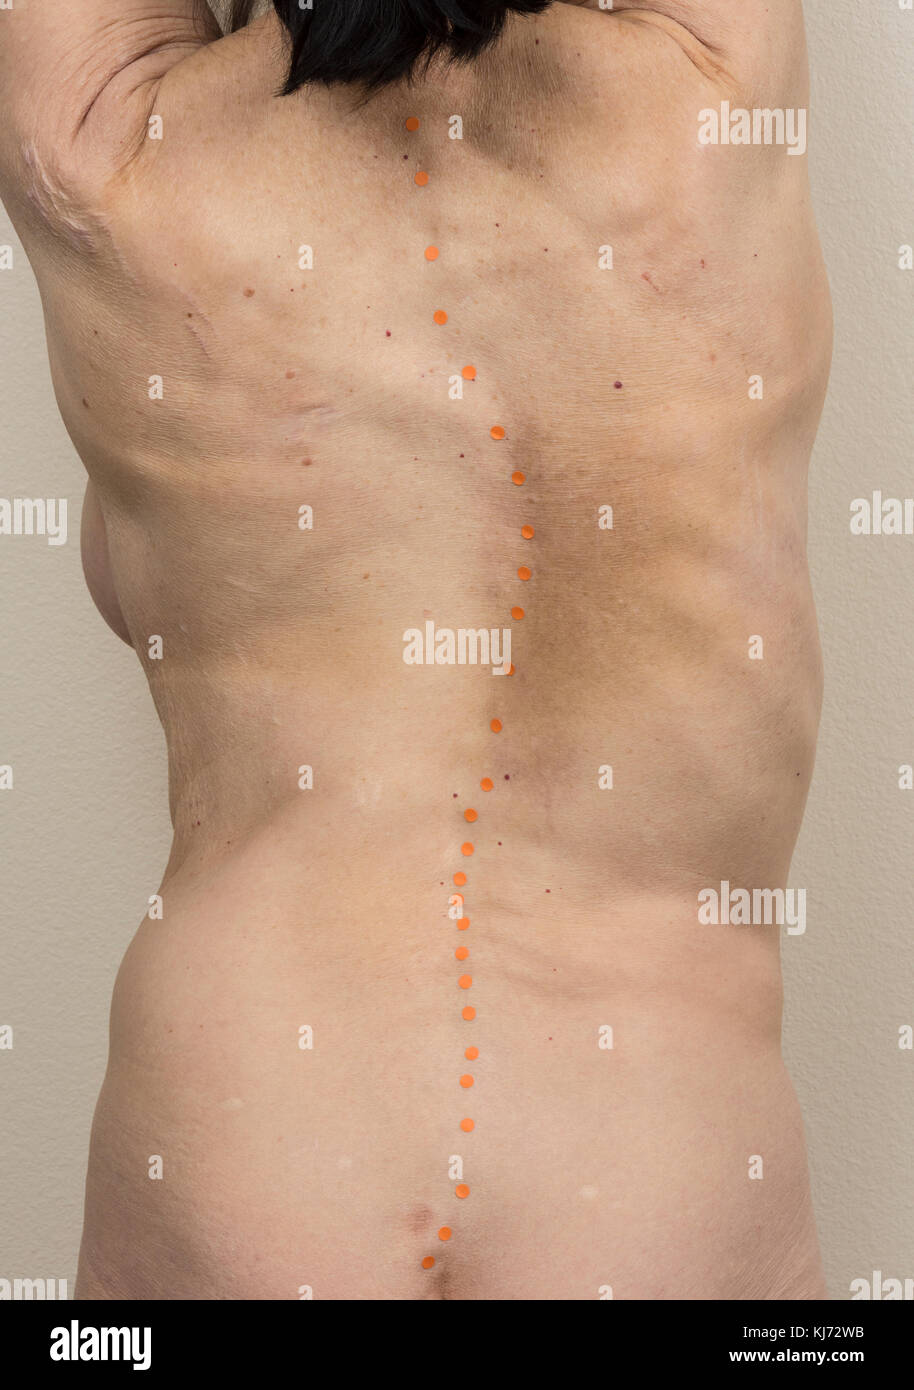 The back of a mature woman with scoliosis with dots showing spine location. - Stock Image